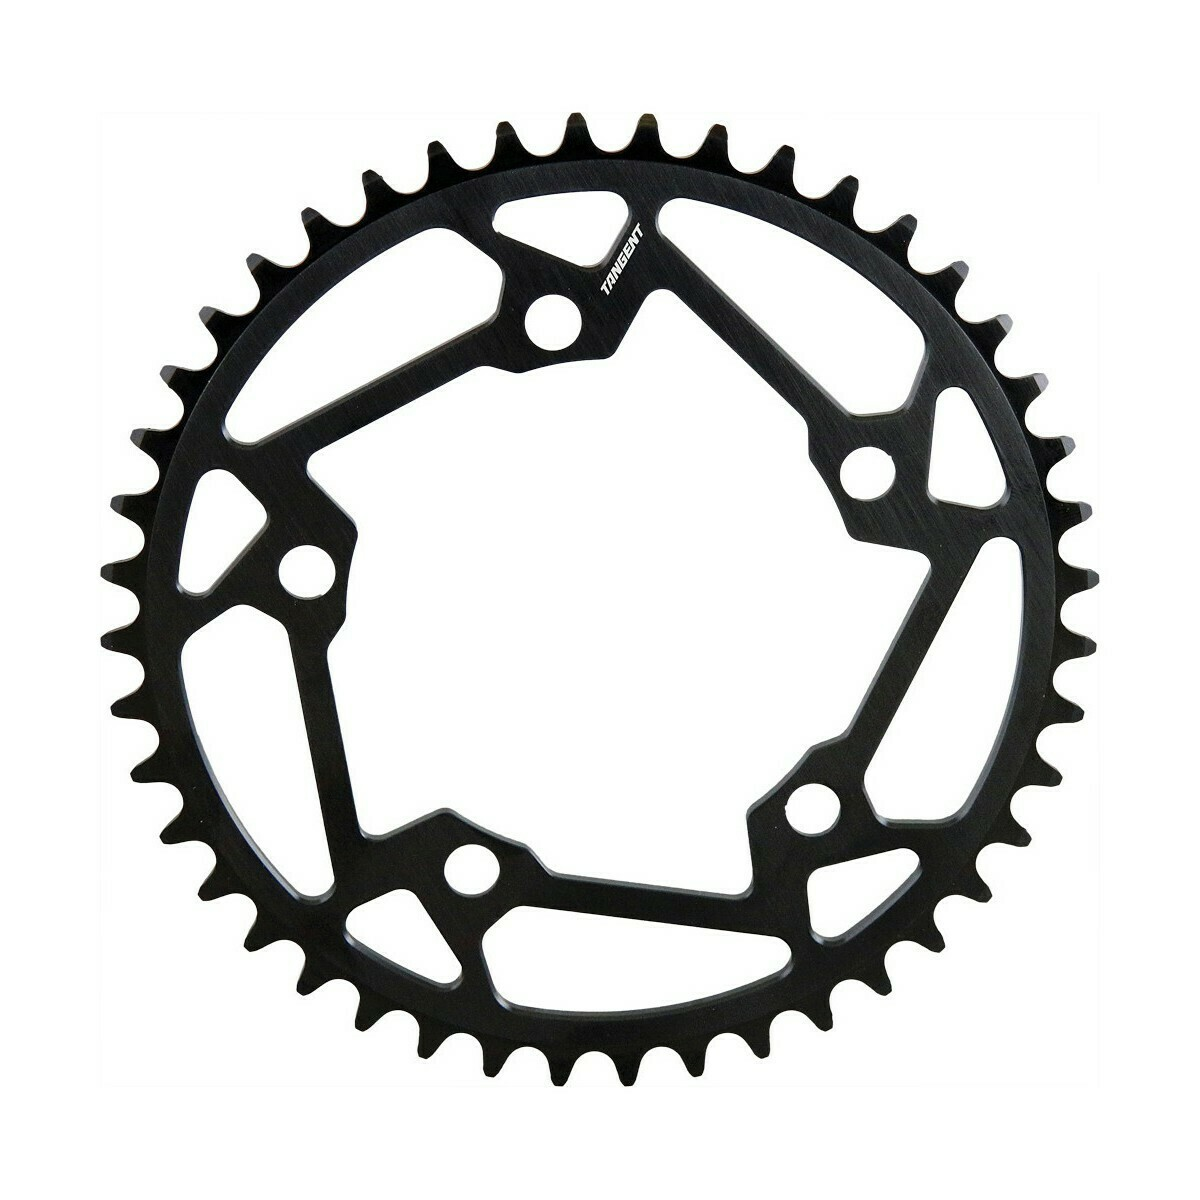 Tangent Halo Chain Ring CNC 5 Bolt